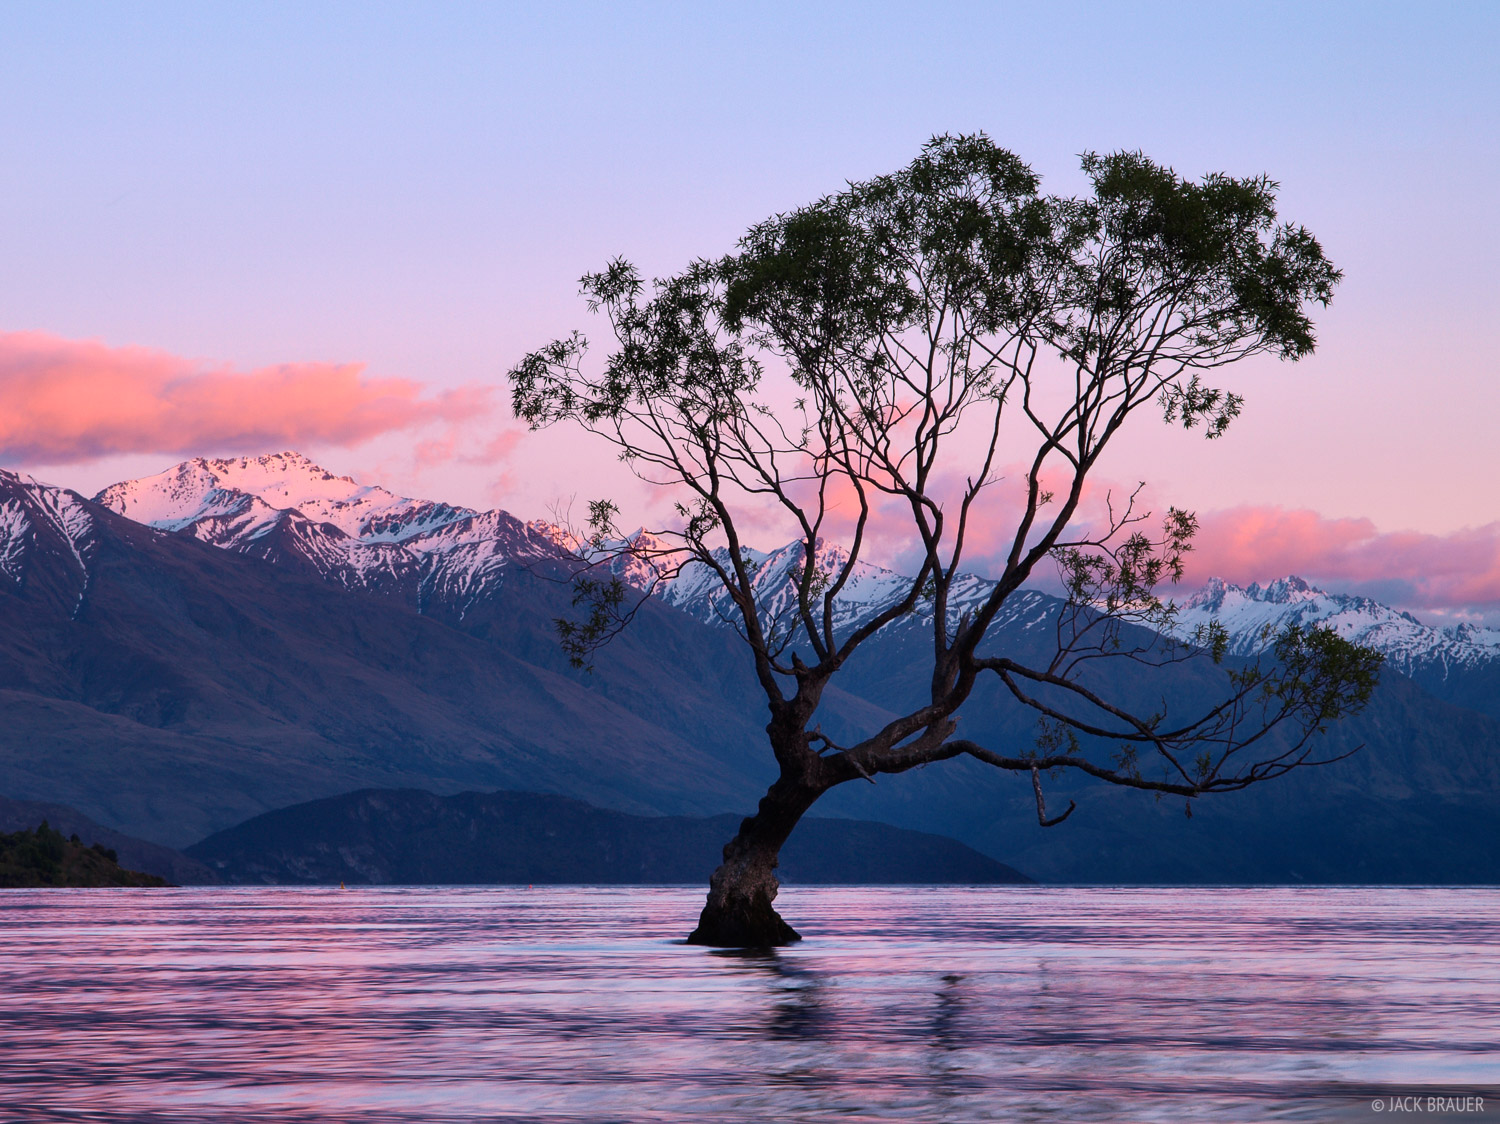 Lake Wanaka, New Zealand, photo